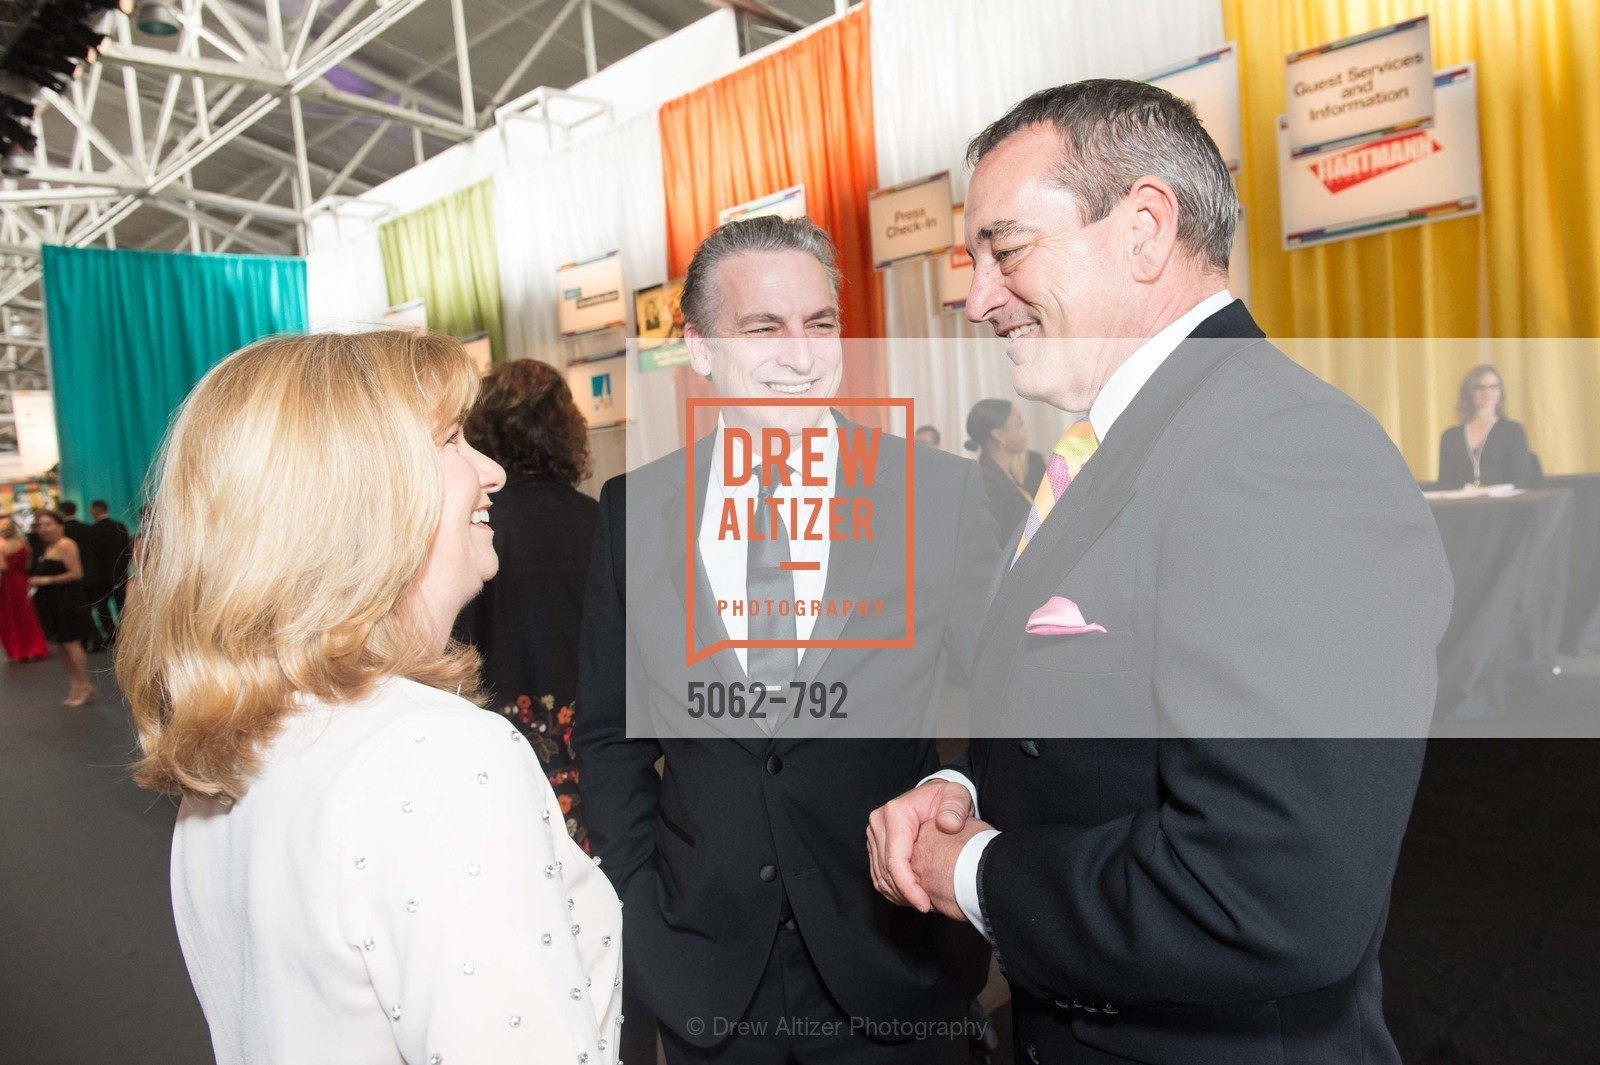 Diane Fitzpatrick, Tim Fitzpatrick, Ashley McCumber, MEALS ON WHEELS OF SAN FRANCISCO'S 28th Annual Star Chefs and Vintners Gala, US, April 20th, 2015,Drew Altizer, Drew Altizer Photography, full-service event agency, private events, San Francisco photographer, photographer California